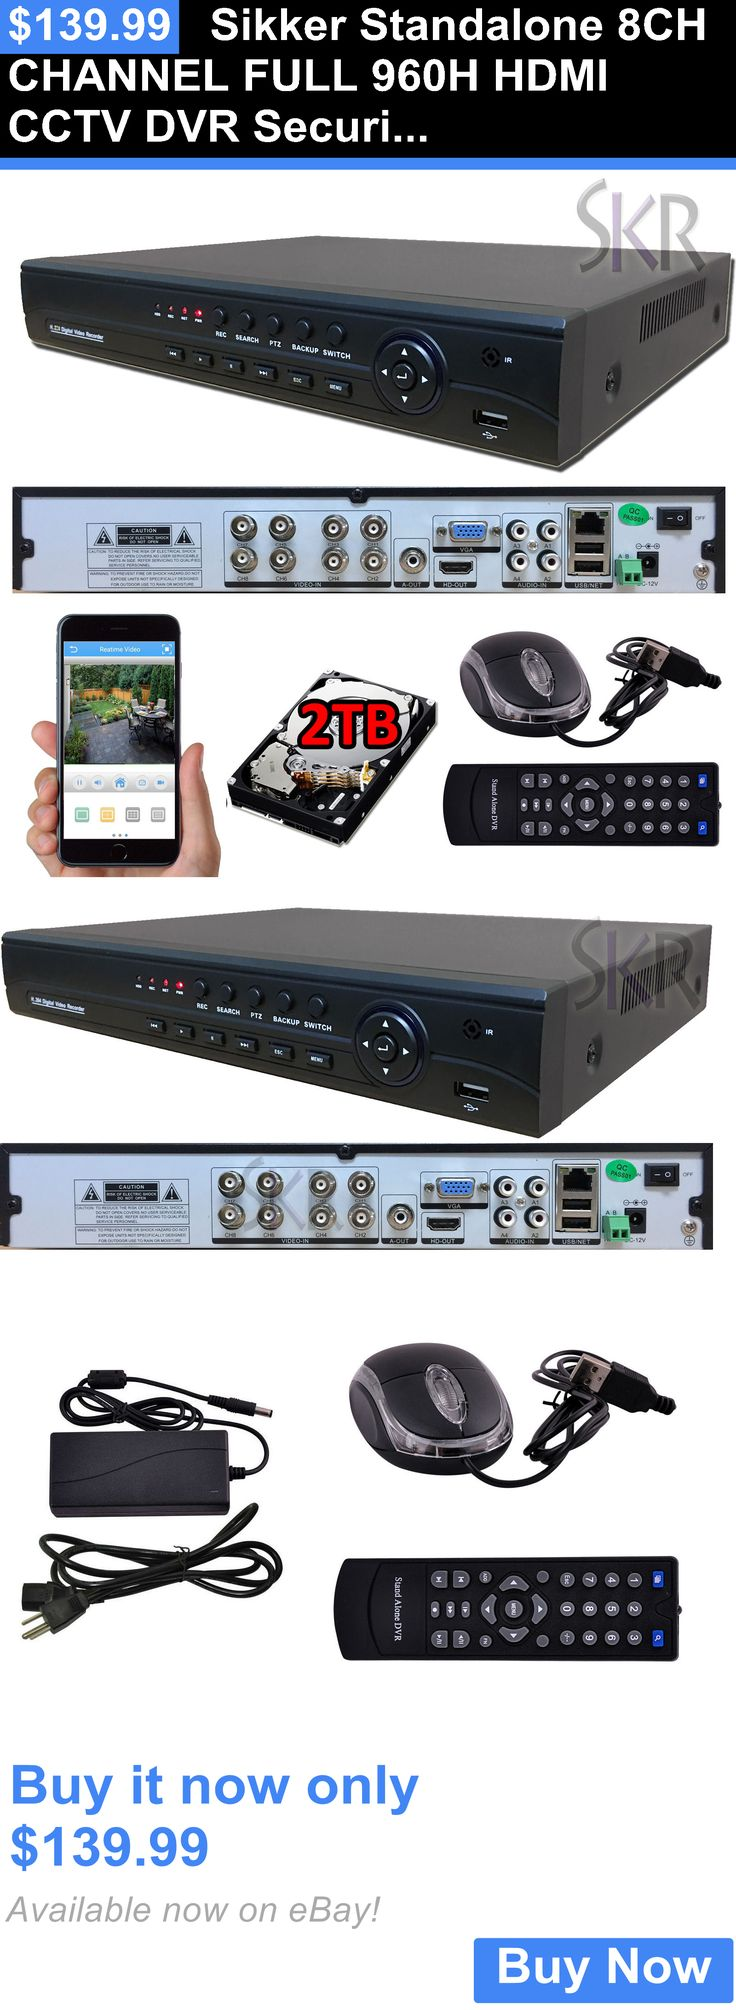 Digital Video Recorders Cards: Sikker Standalone 8Ch Channel Full 960H Hdmi Cctv Dvr Security Camera System 2Tb BUY IT NOW ONLY: $139.99